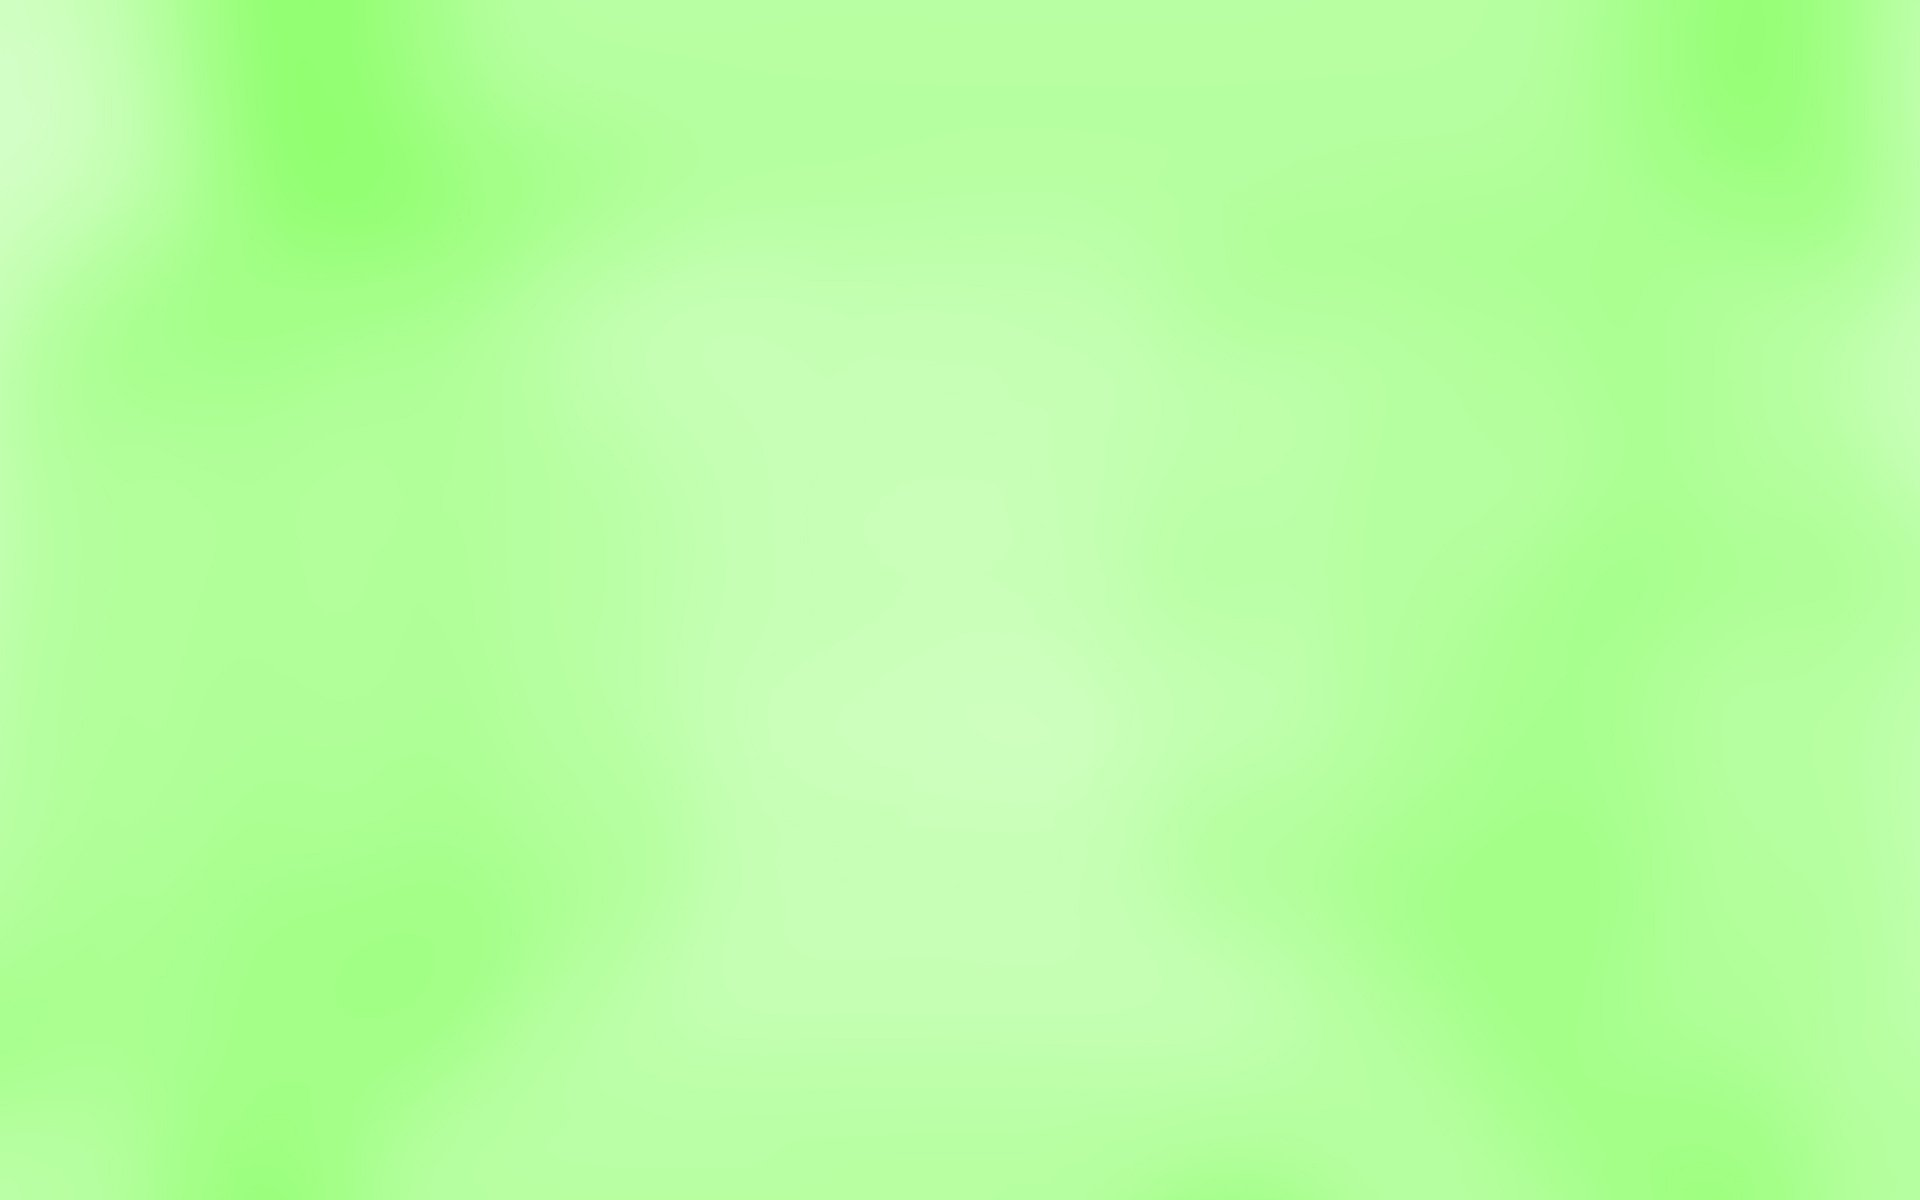 Green Backgr... Uplifting Mobile Wallpaper